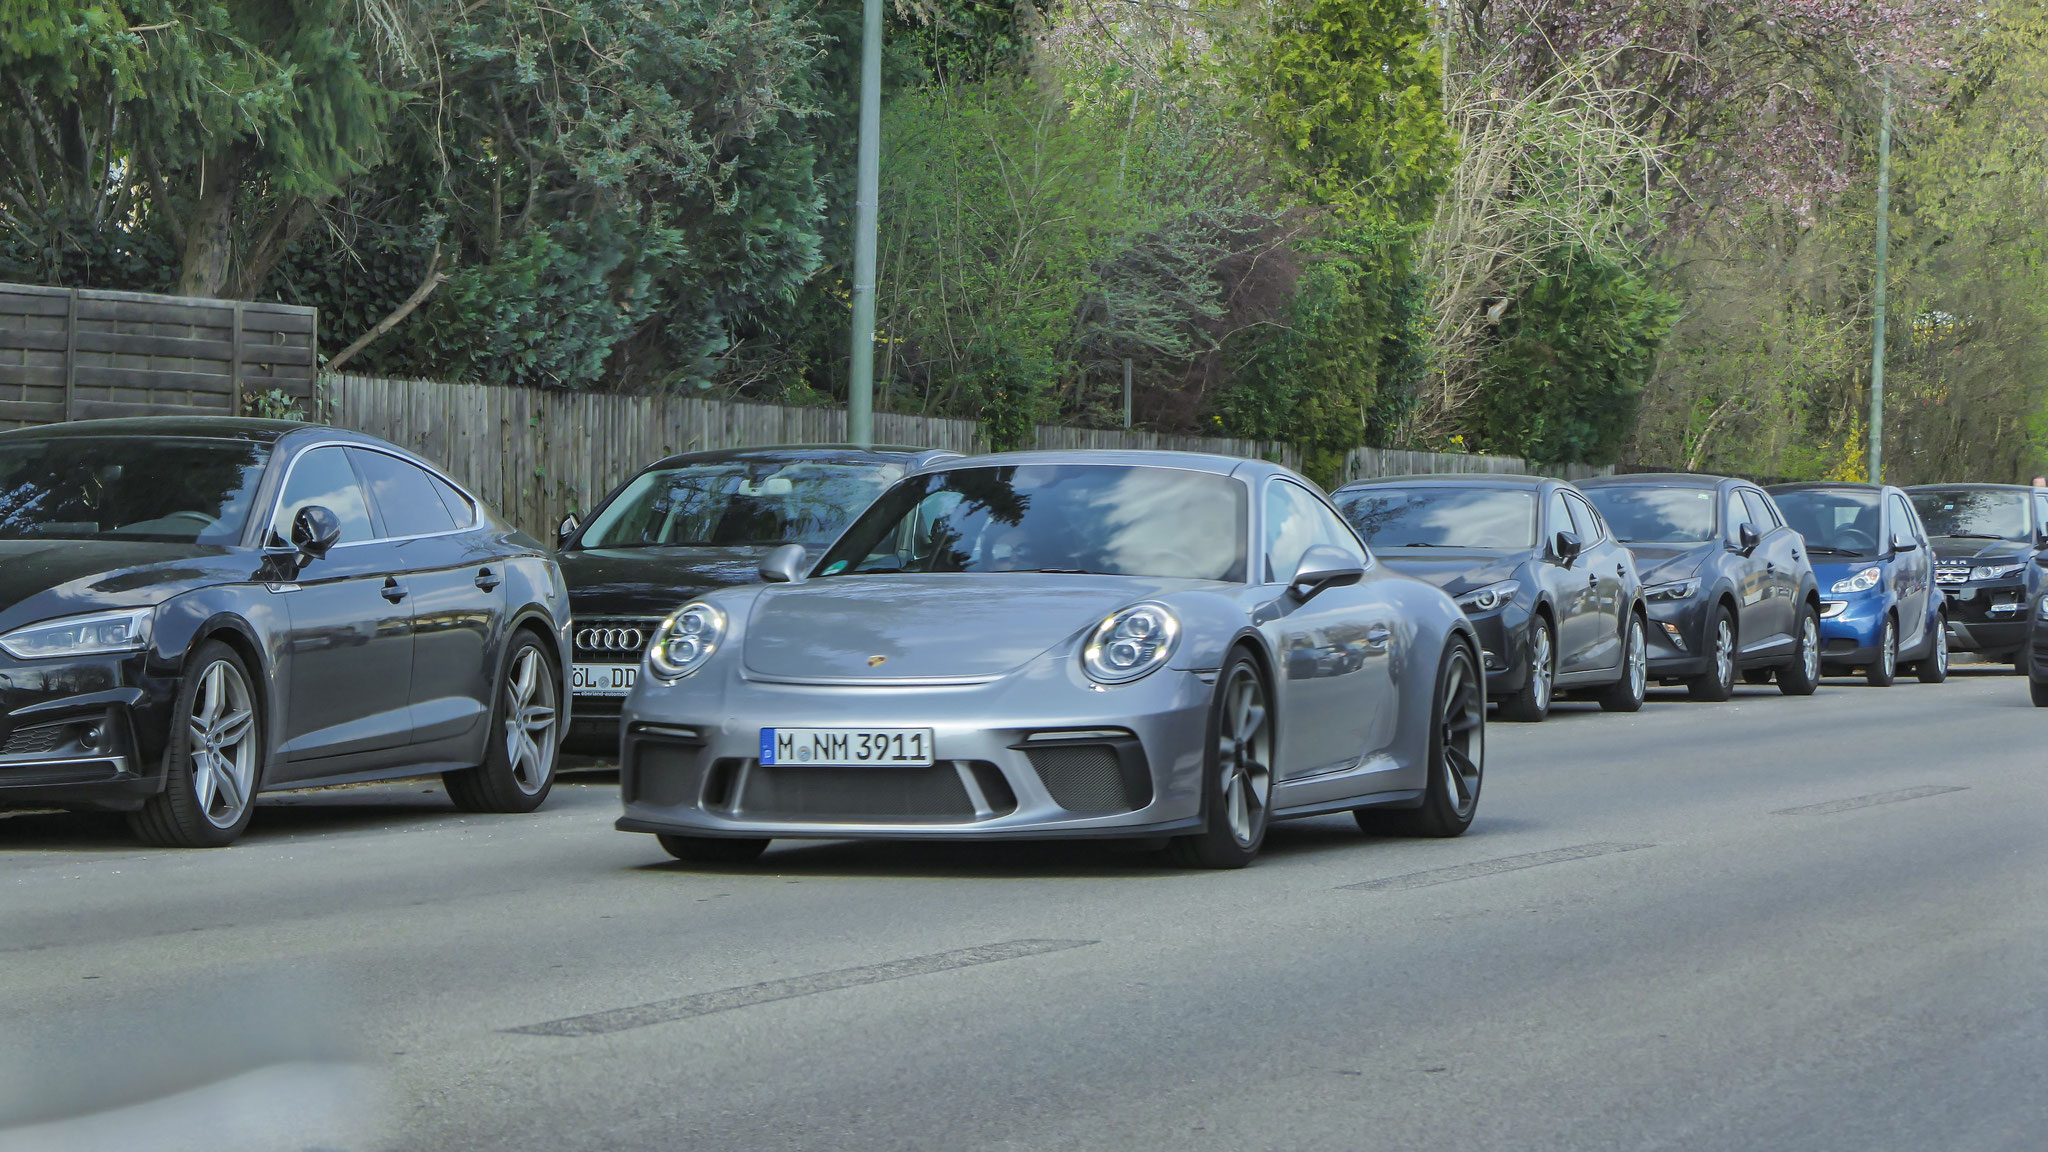 Porsche 991 GT3 Touring Package - M-NM-3911